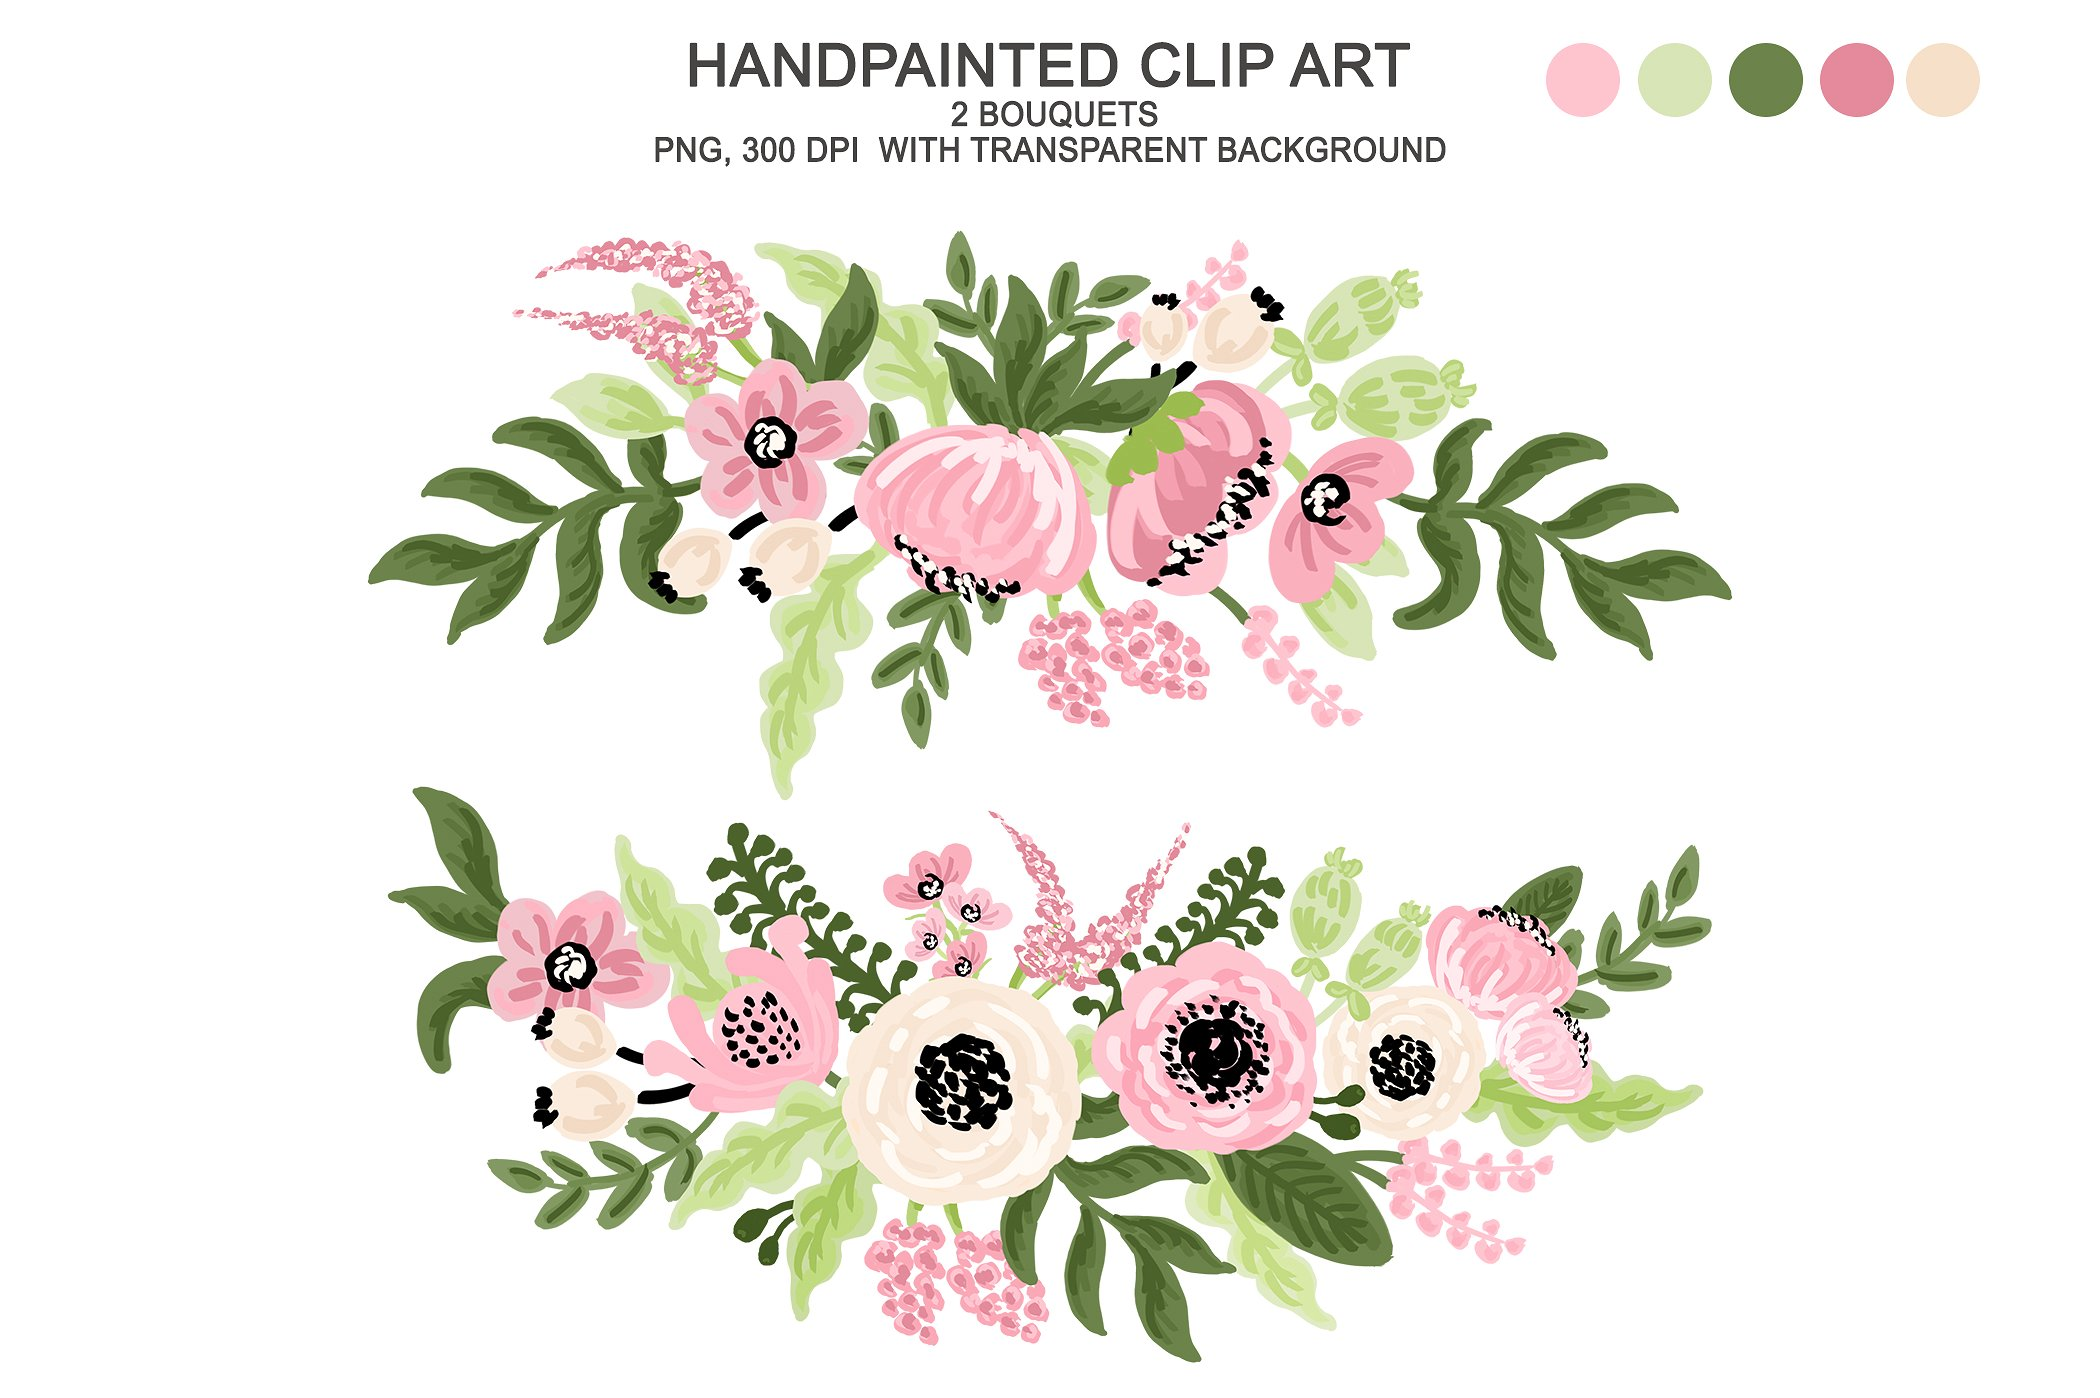 Floral clipart. Digital watercolor flower illustrations